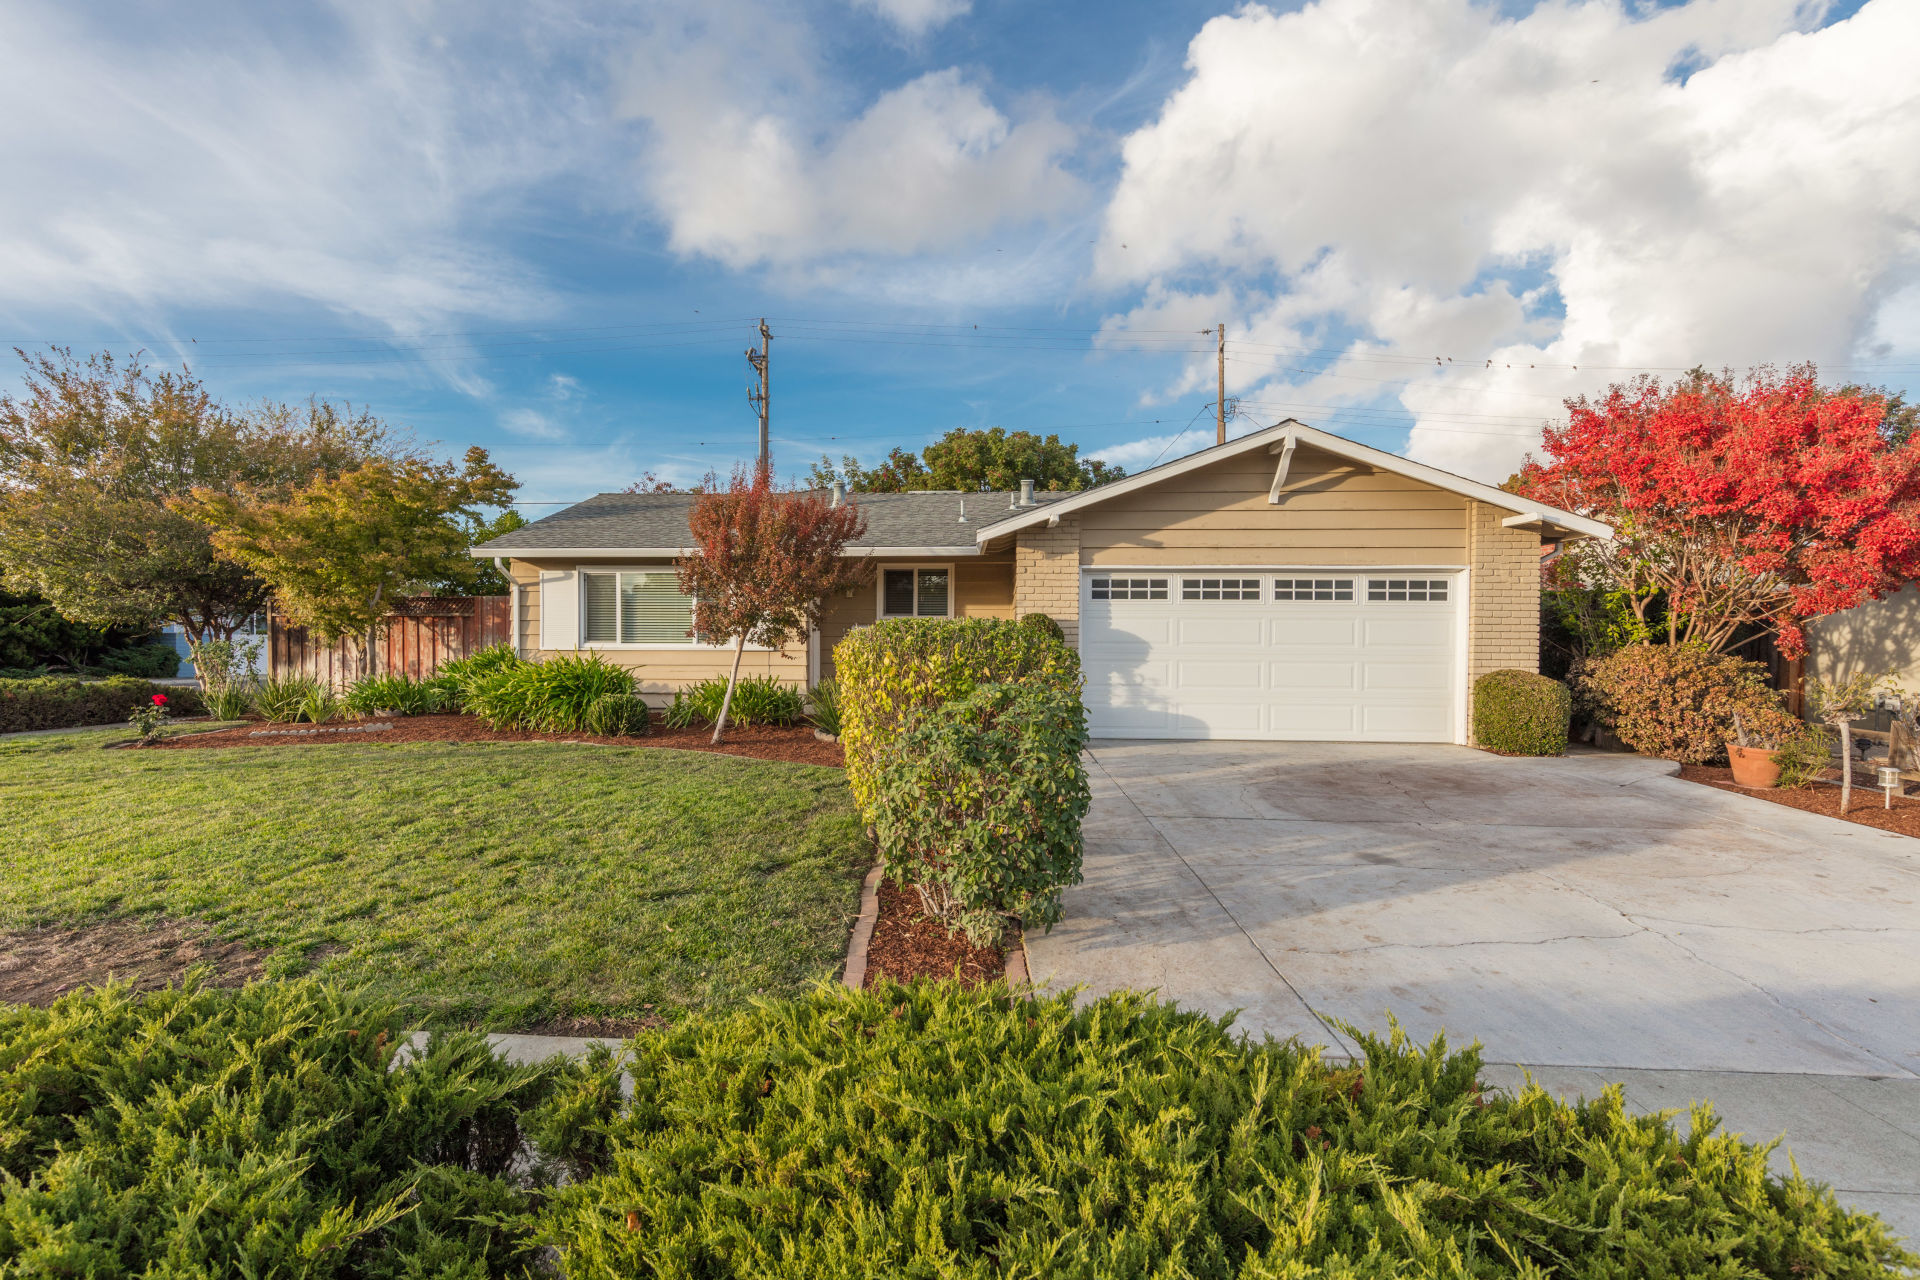 891 Springfield Avenue, Campbell 95008